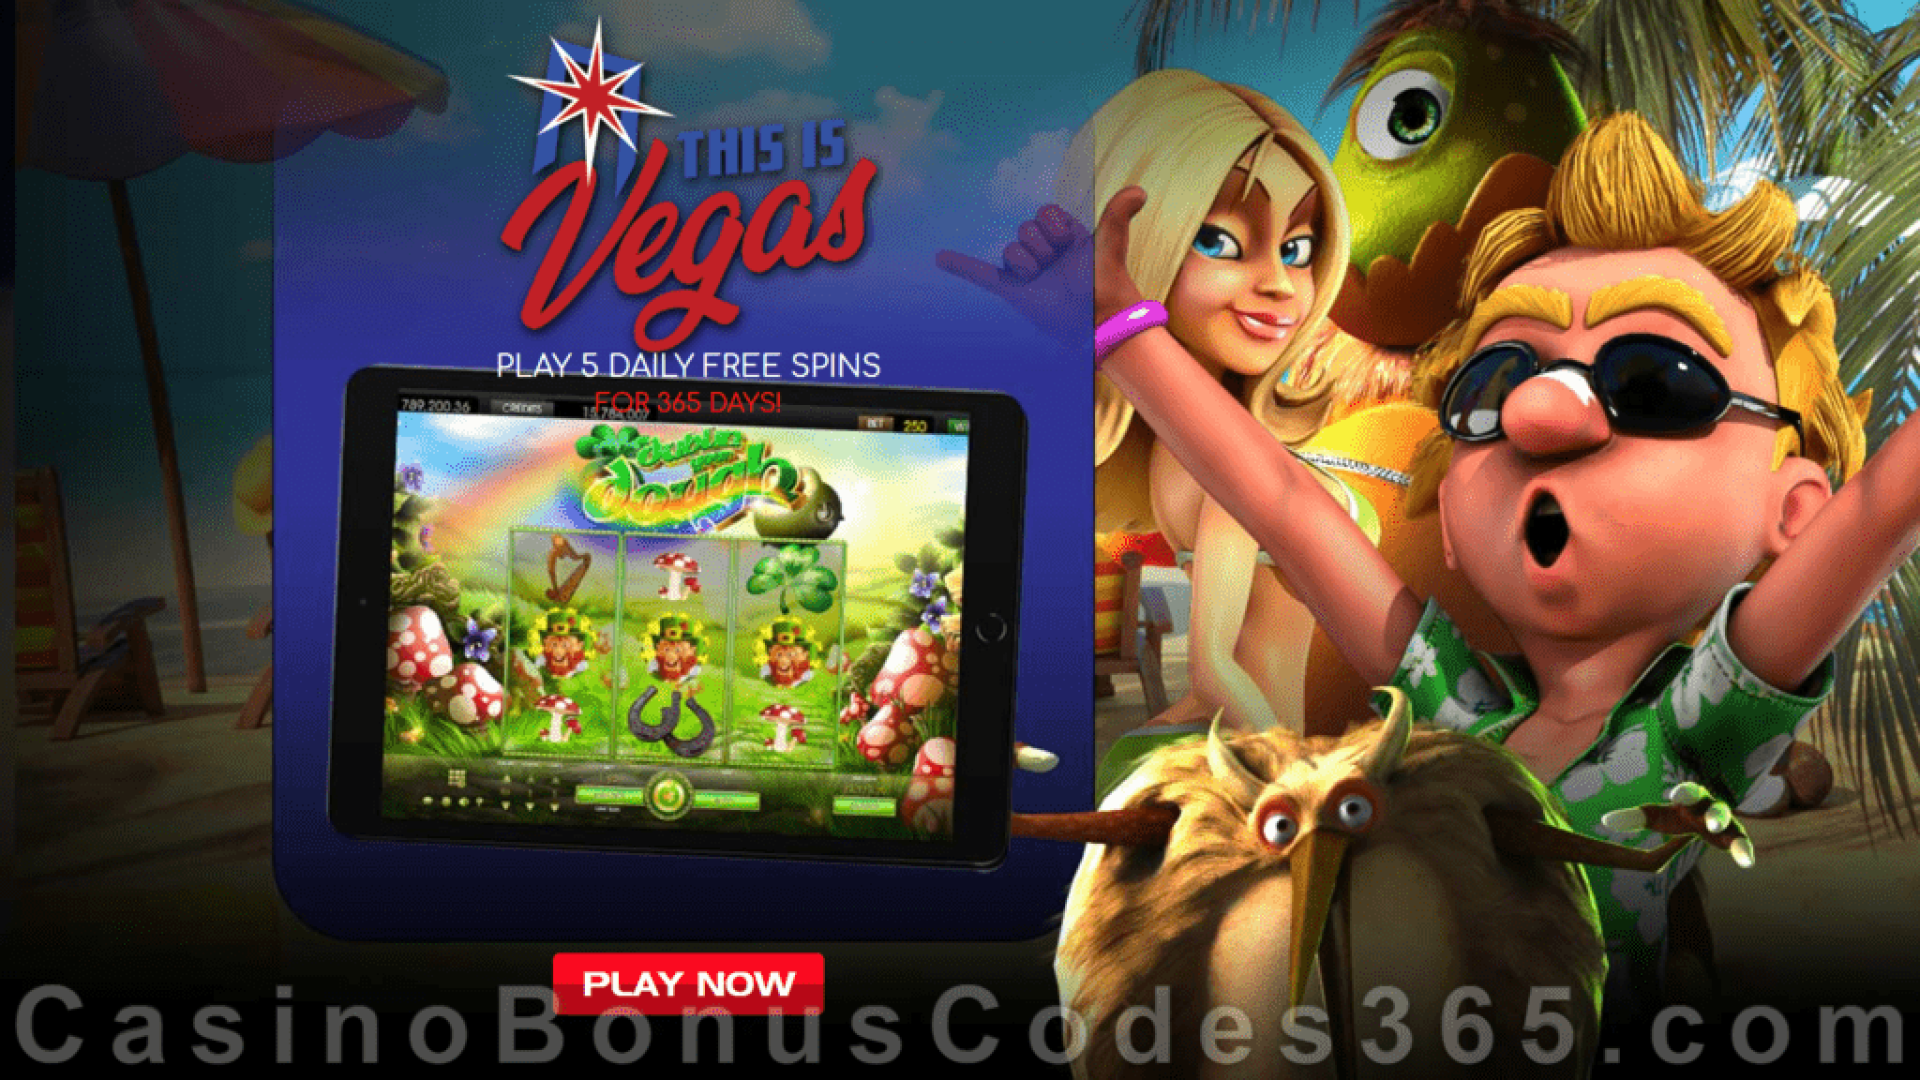 This is Vegas Casino 5 FREE Spins for 365 Days Mega Offer